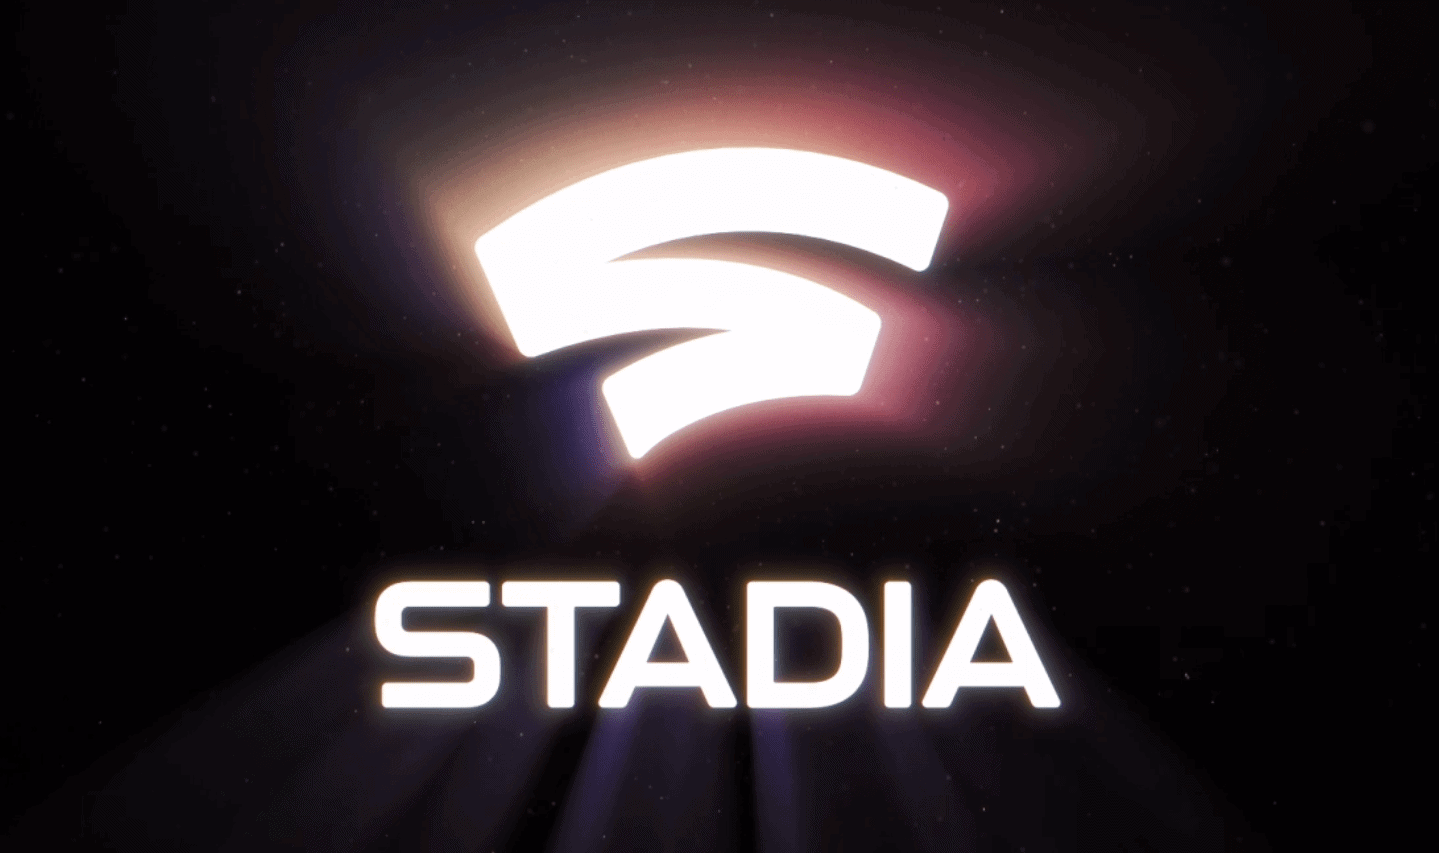 Destiny 2 Will Be Free To Play On Stadia